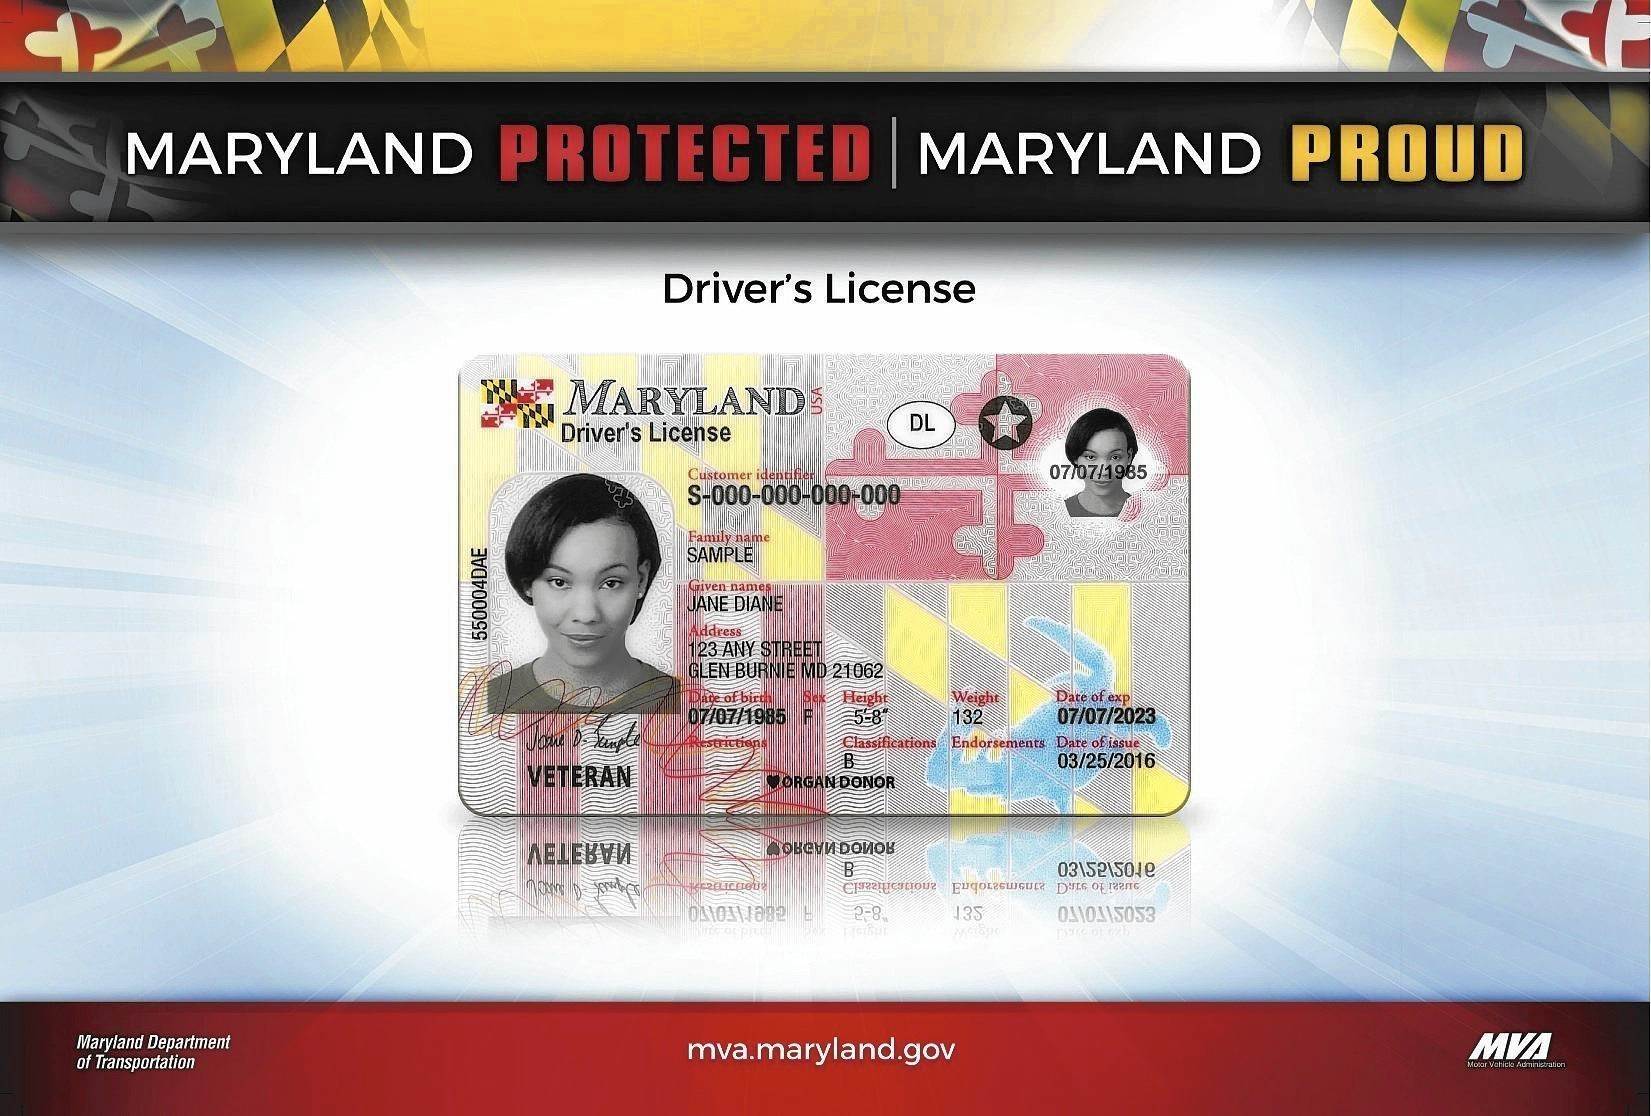 Sun New Driver's Flag-themed Baltimore Maryland - Monday Licenses Available